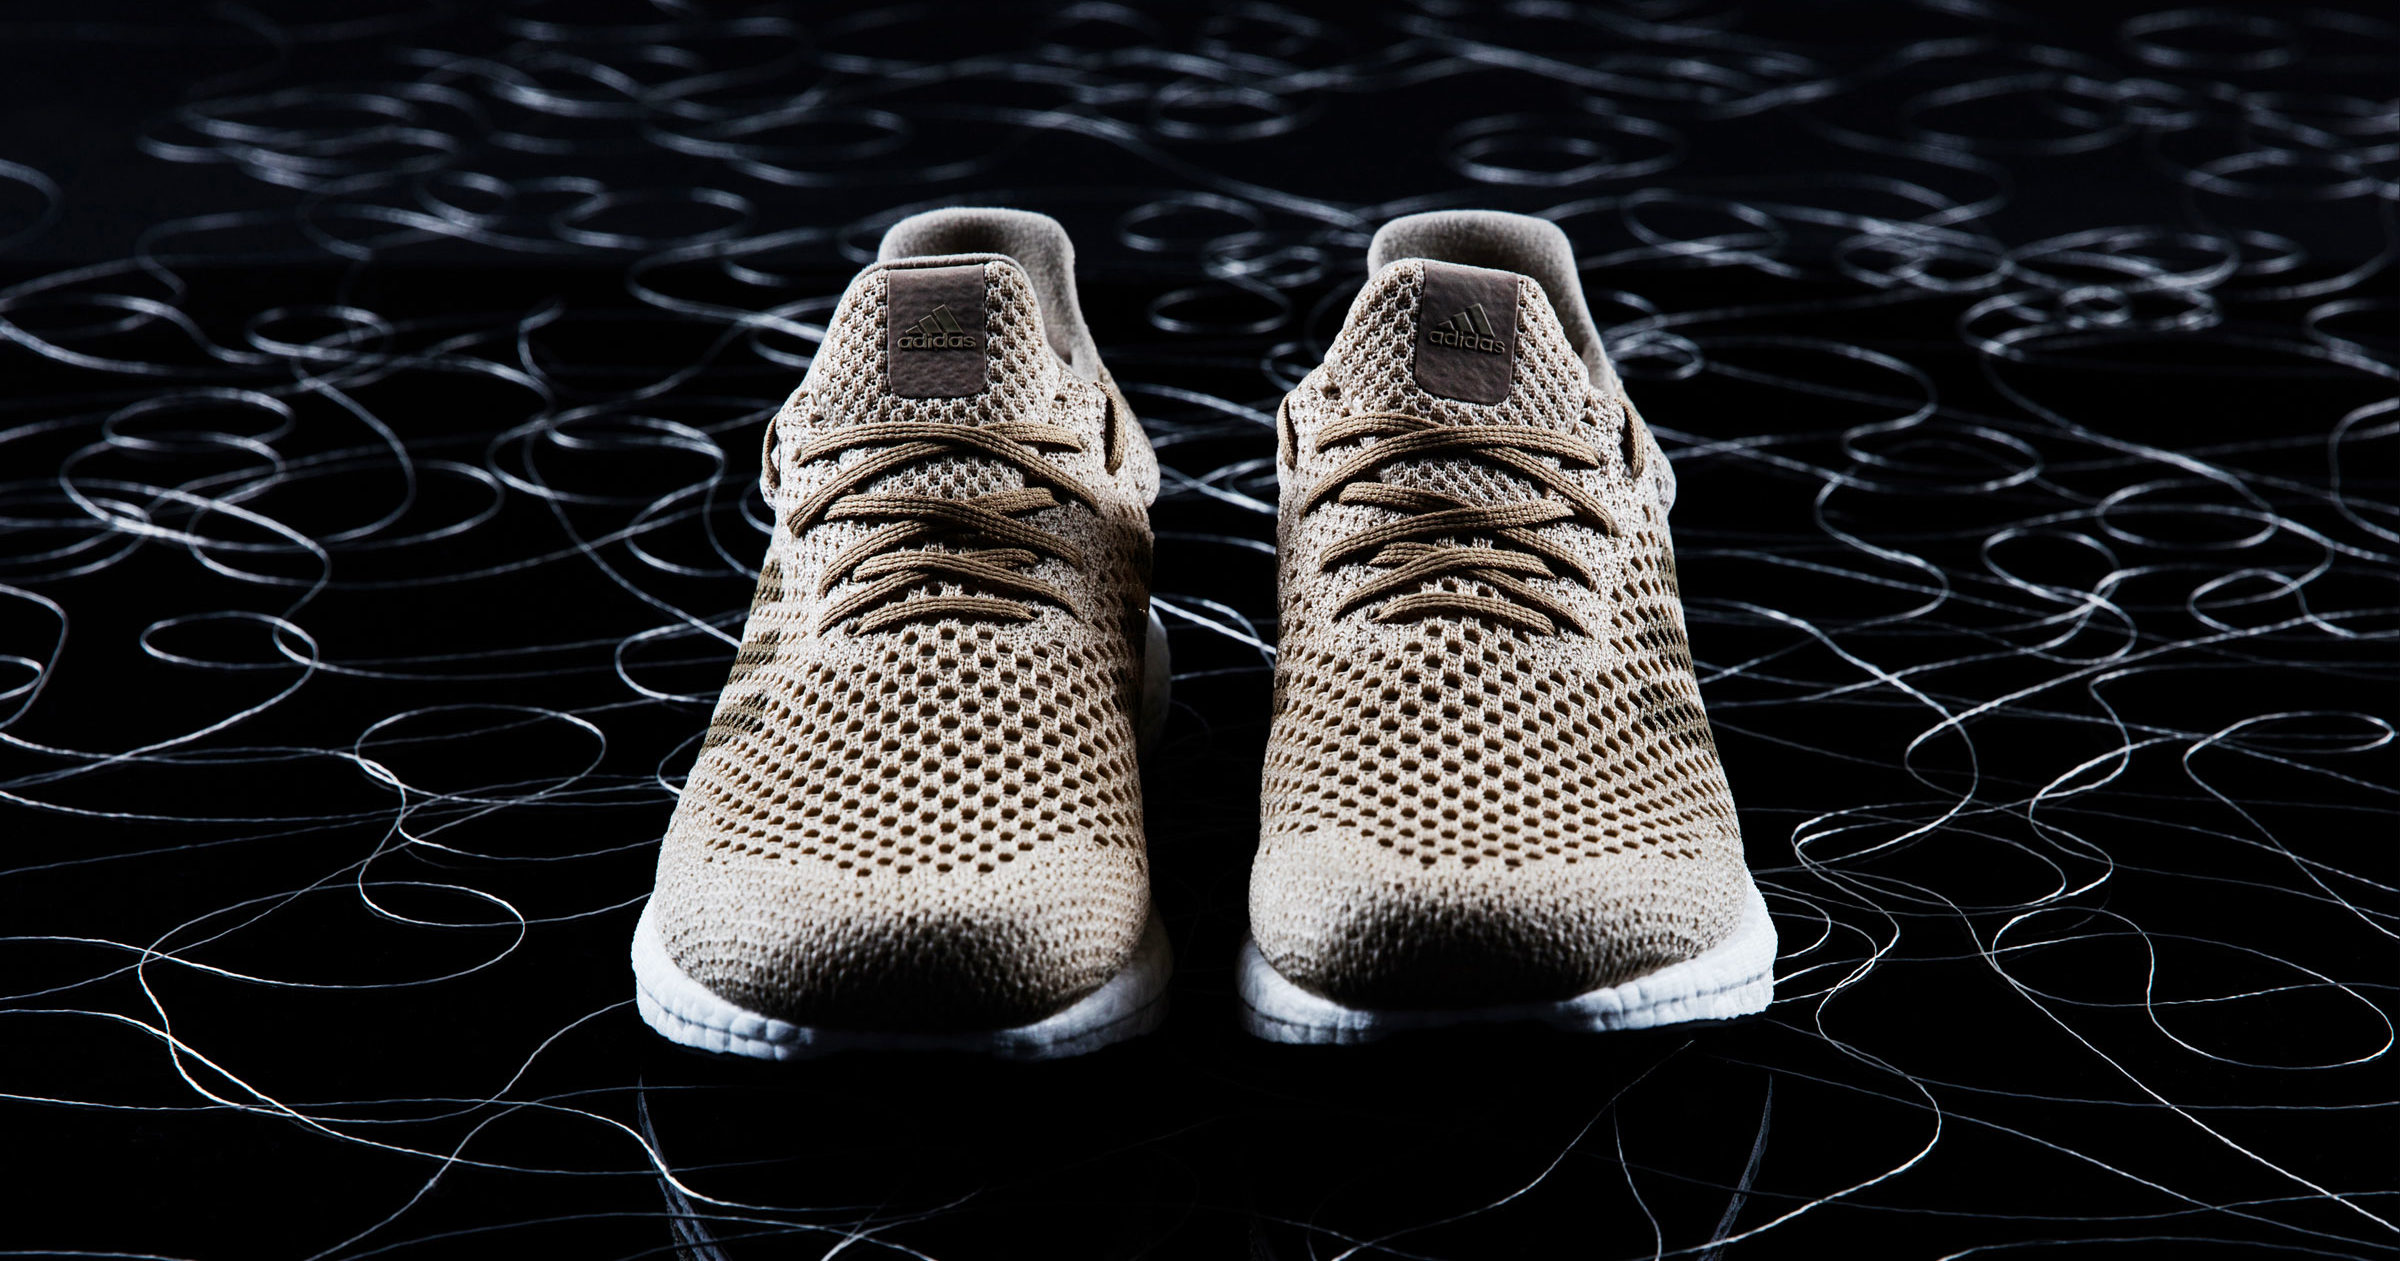 9ee8b1f6d Adidas  latest innovation is a pair of biodegradable sneakers